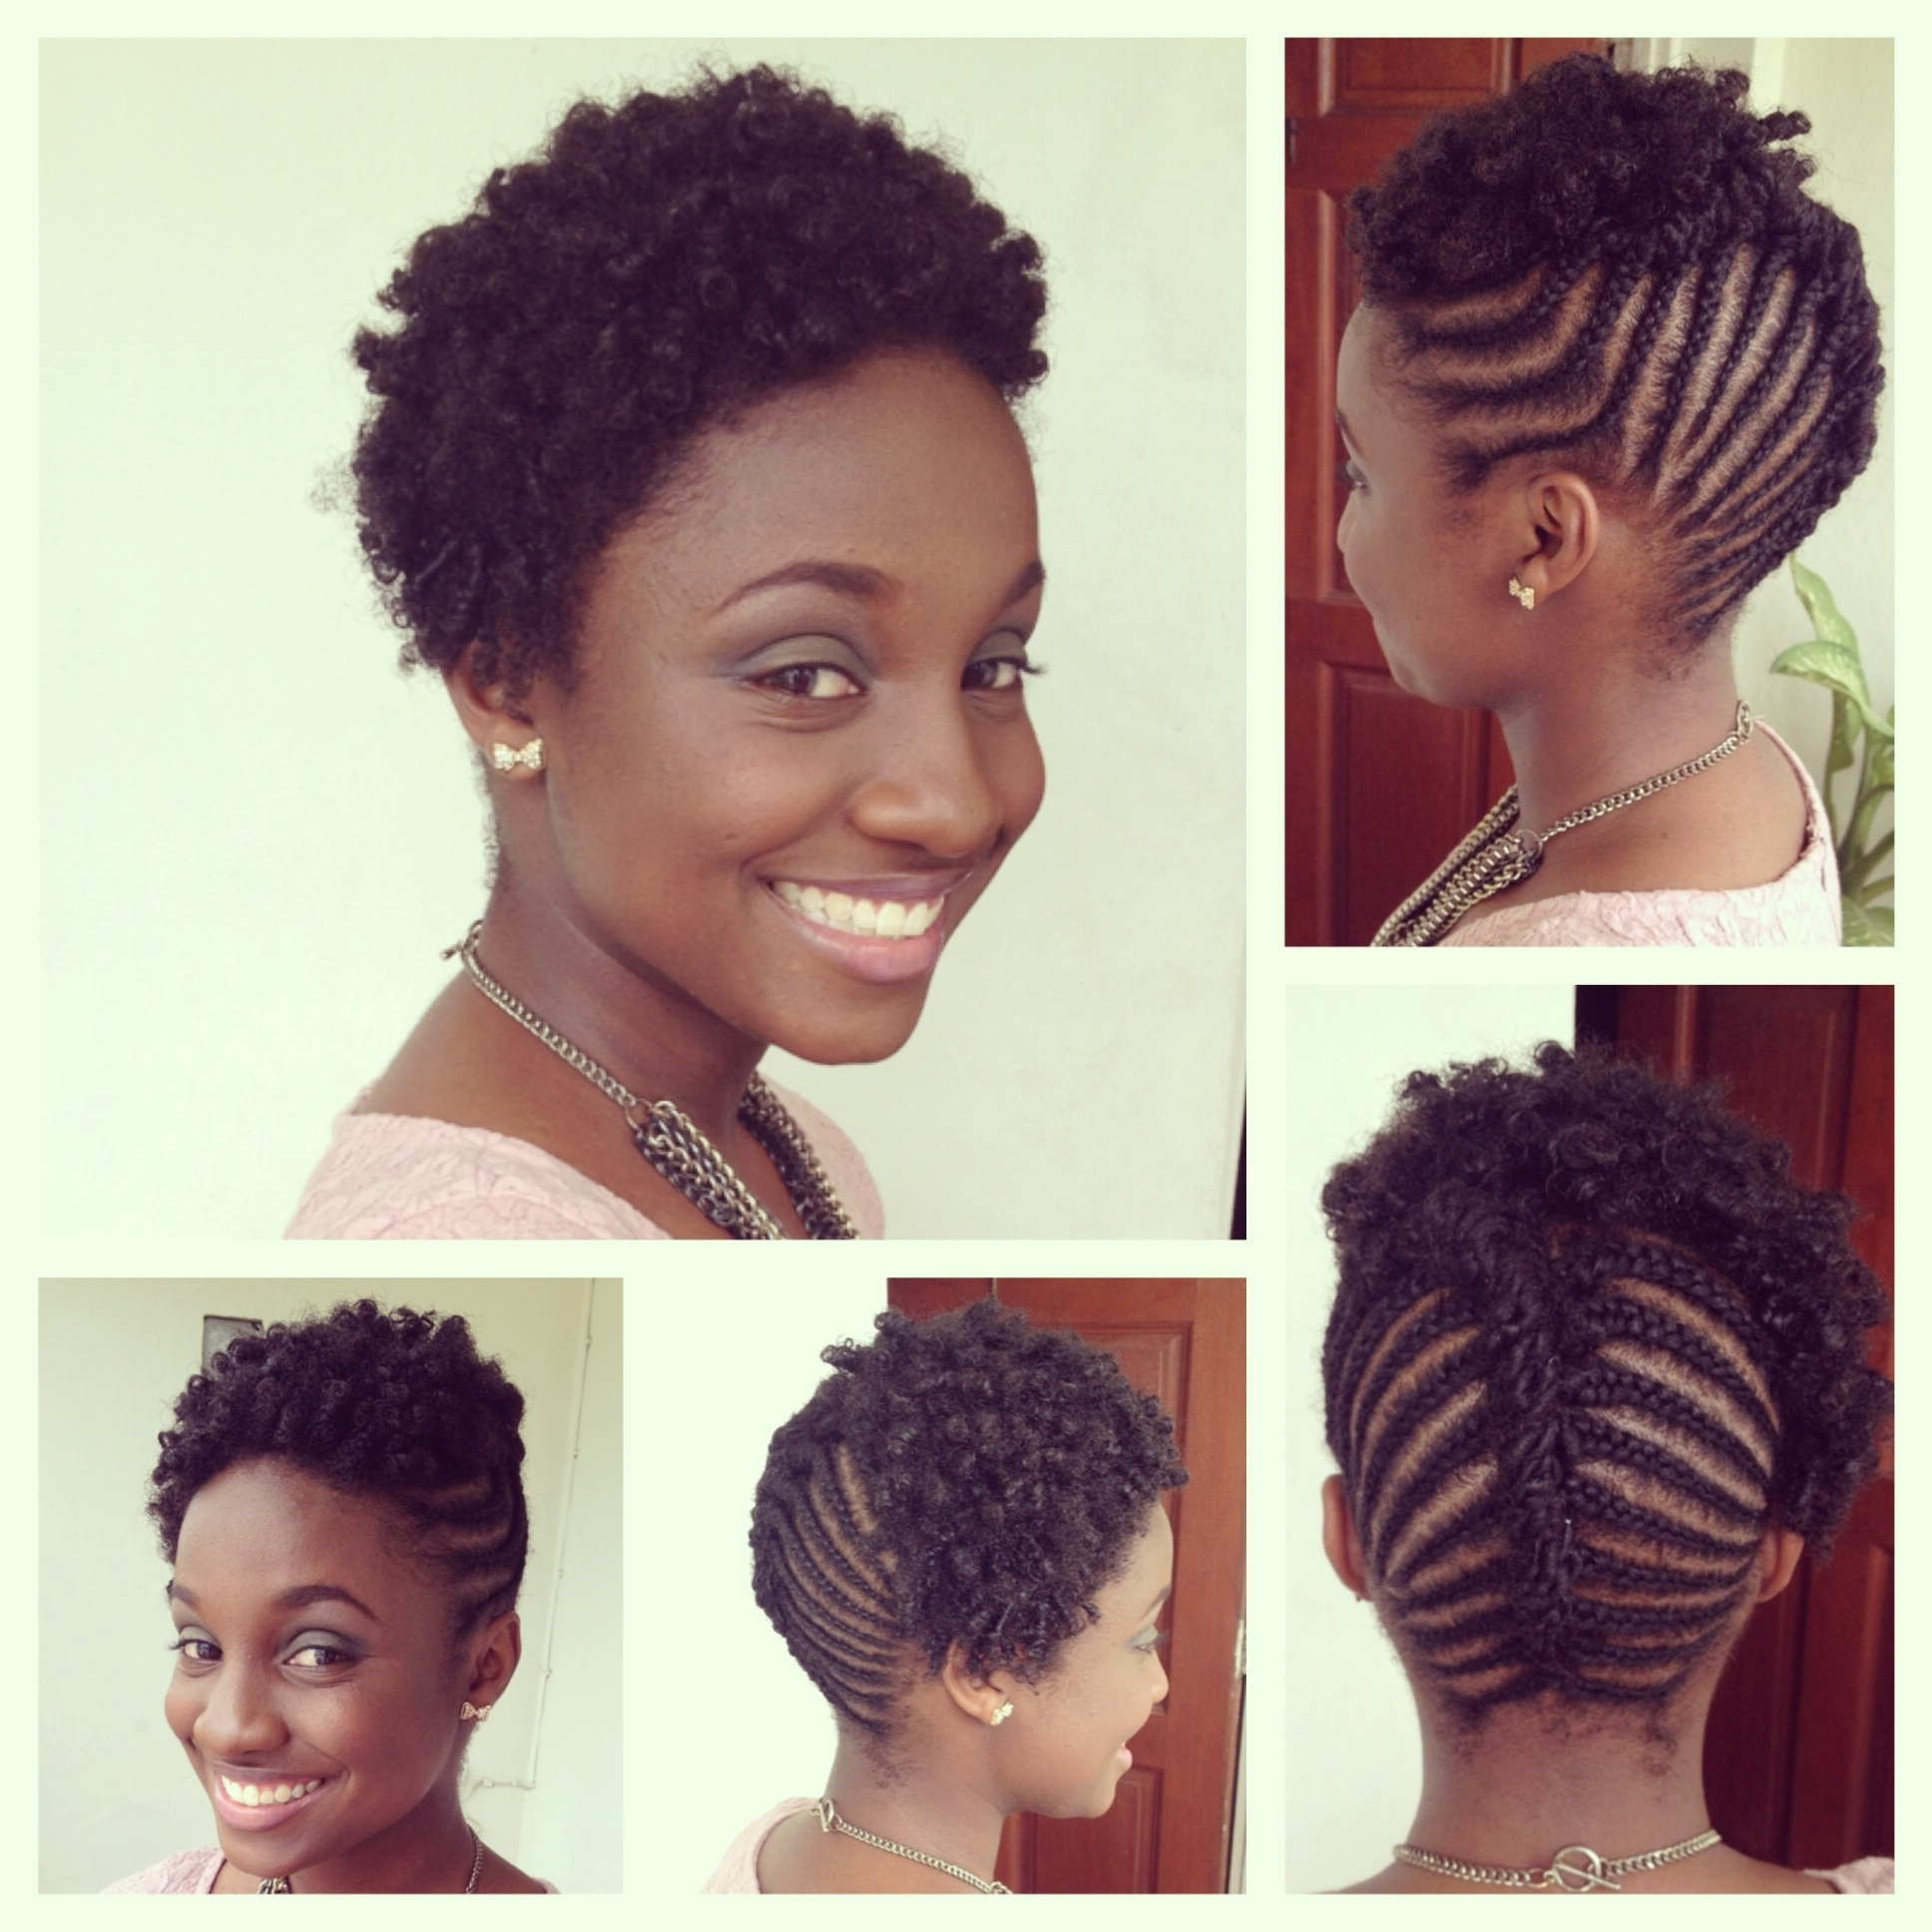 Well Liked Cornrows Upstyle Hairstyles For Popular Cornrow Braided Updo Hairstyles 16 Inspiration With Cornrow (View 5 of 15)